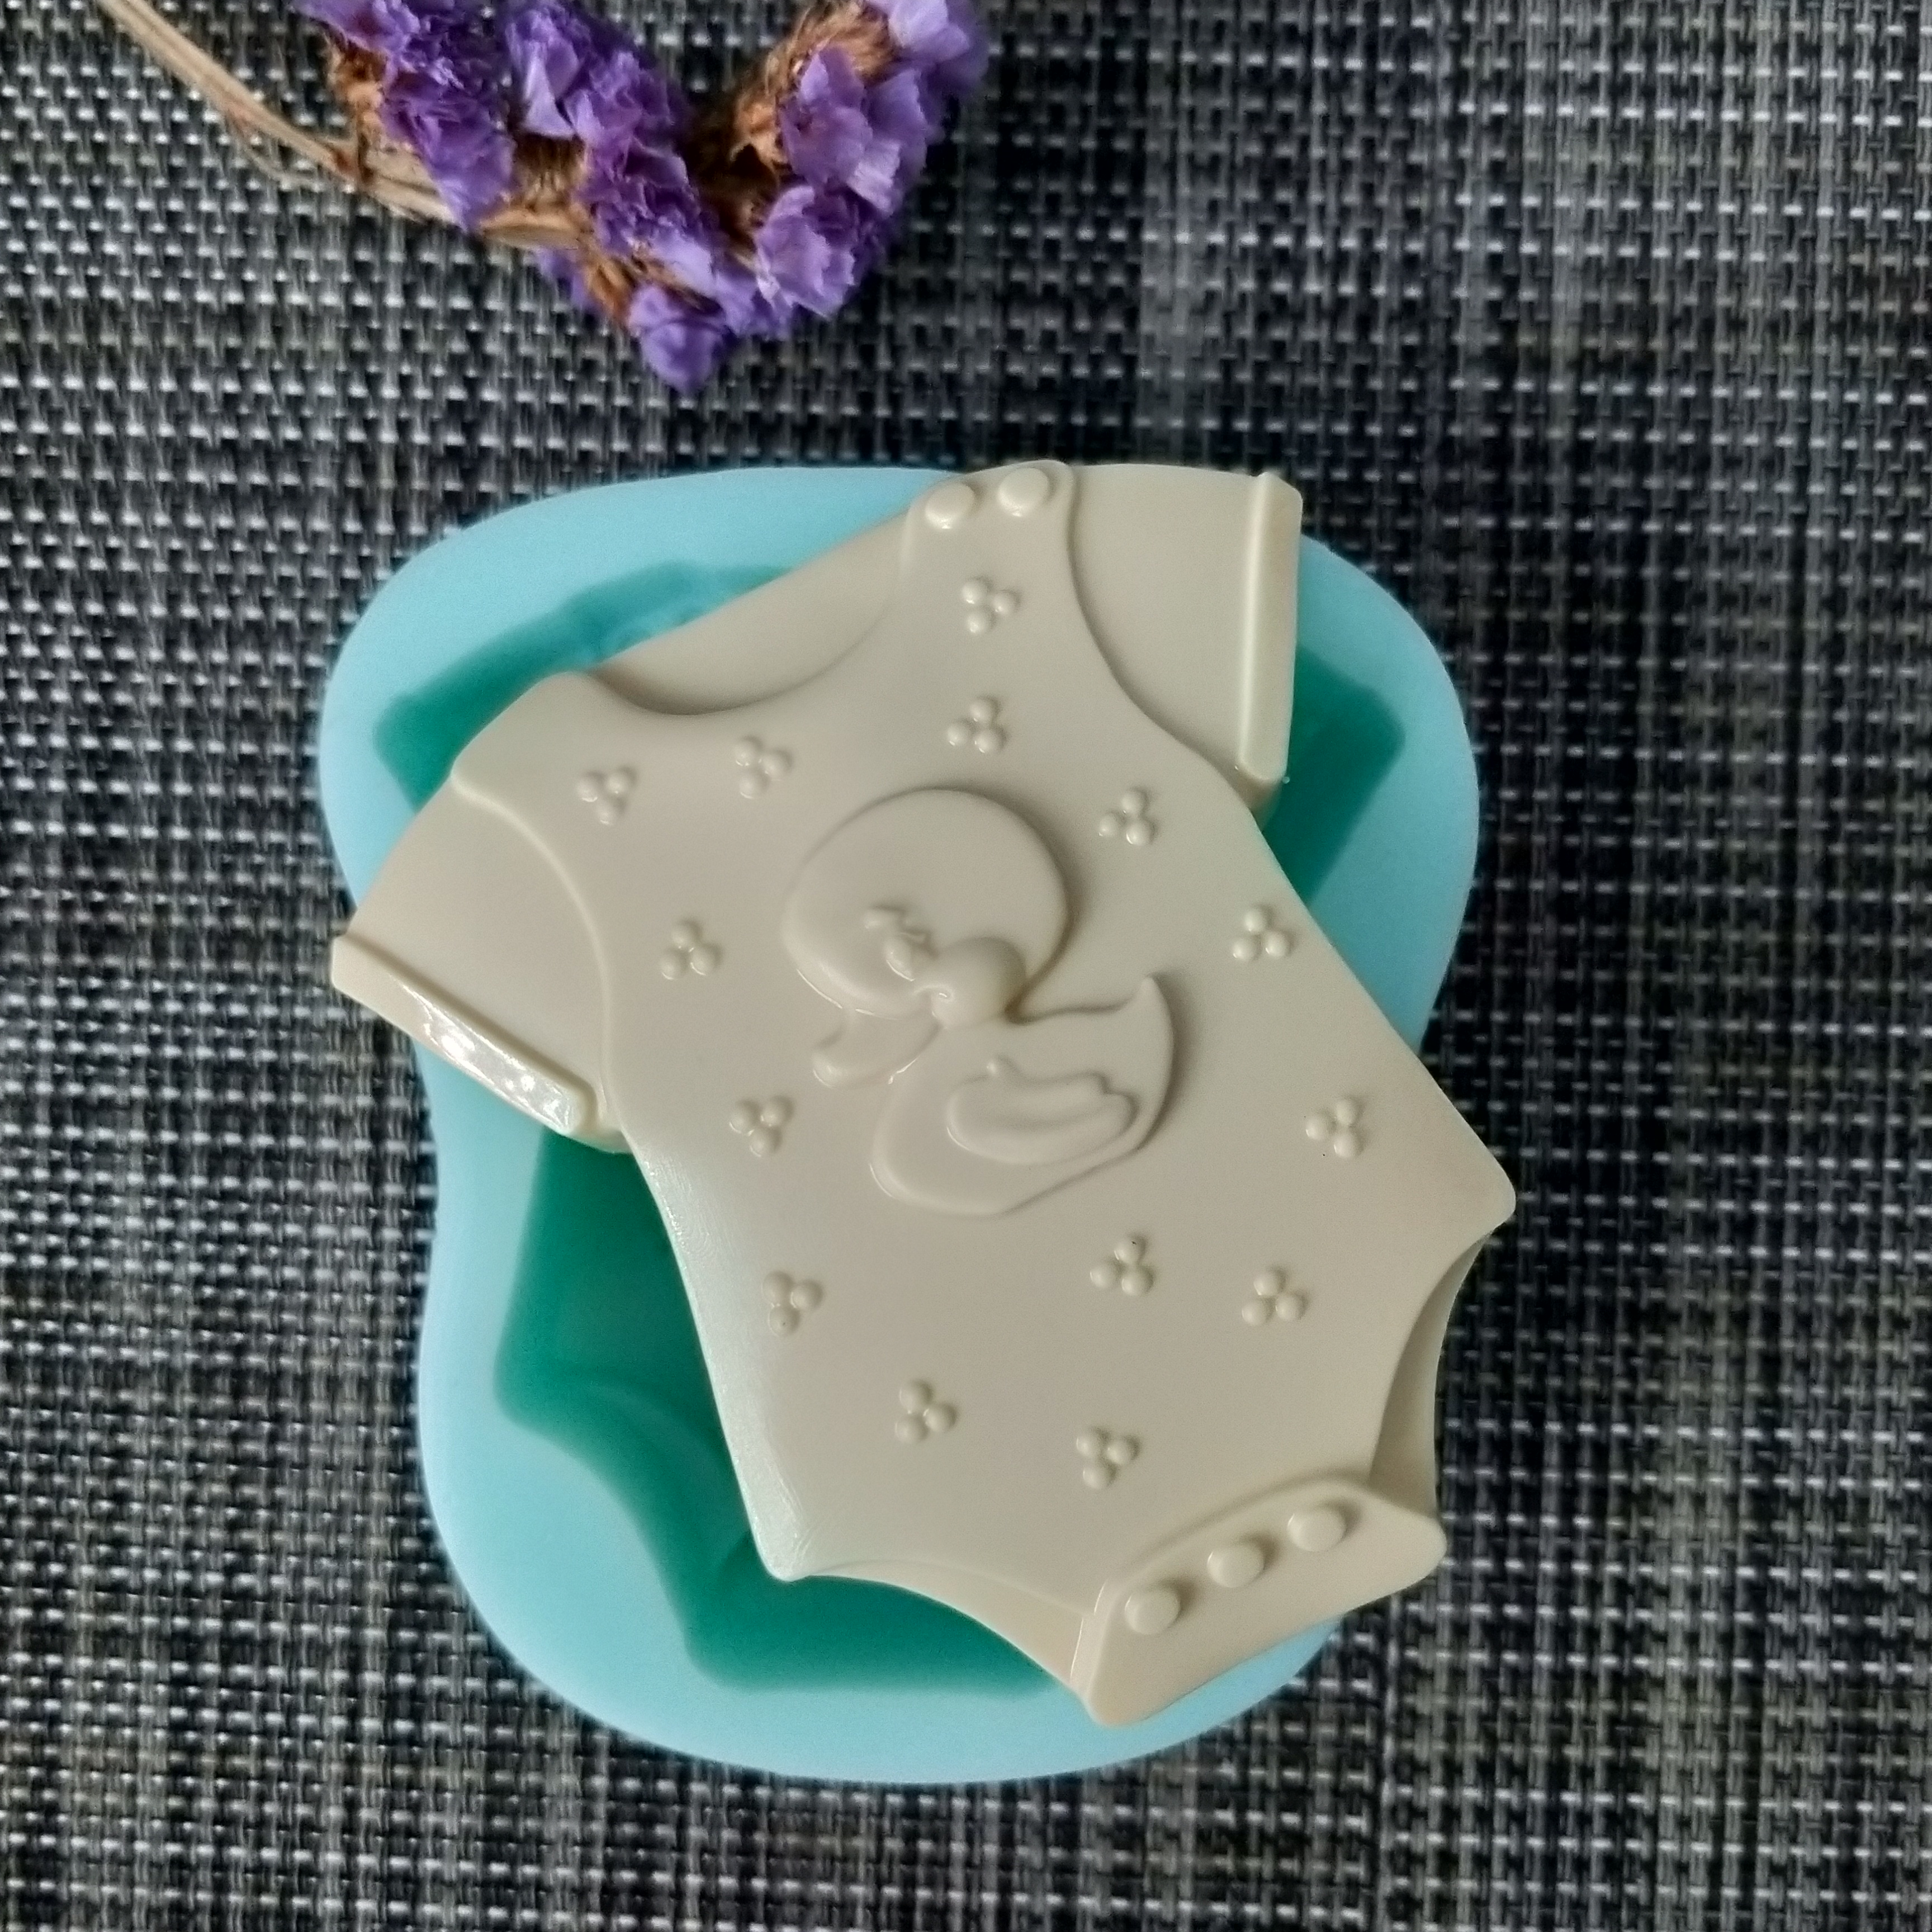 QT0149 PRZY silicone mold Baby dress soap mould handmade soap making molds candle silicone mold resin clay moulds